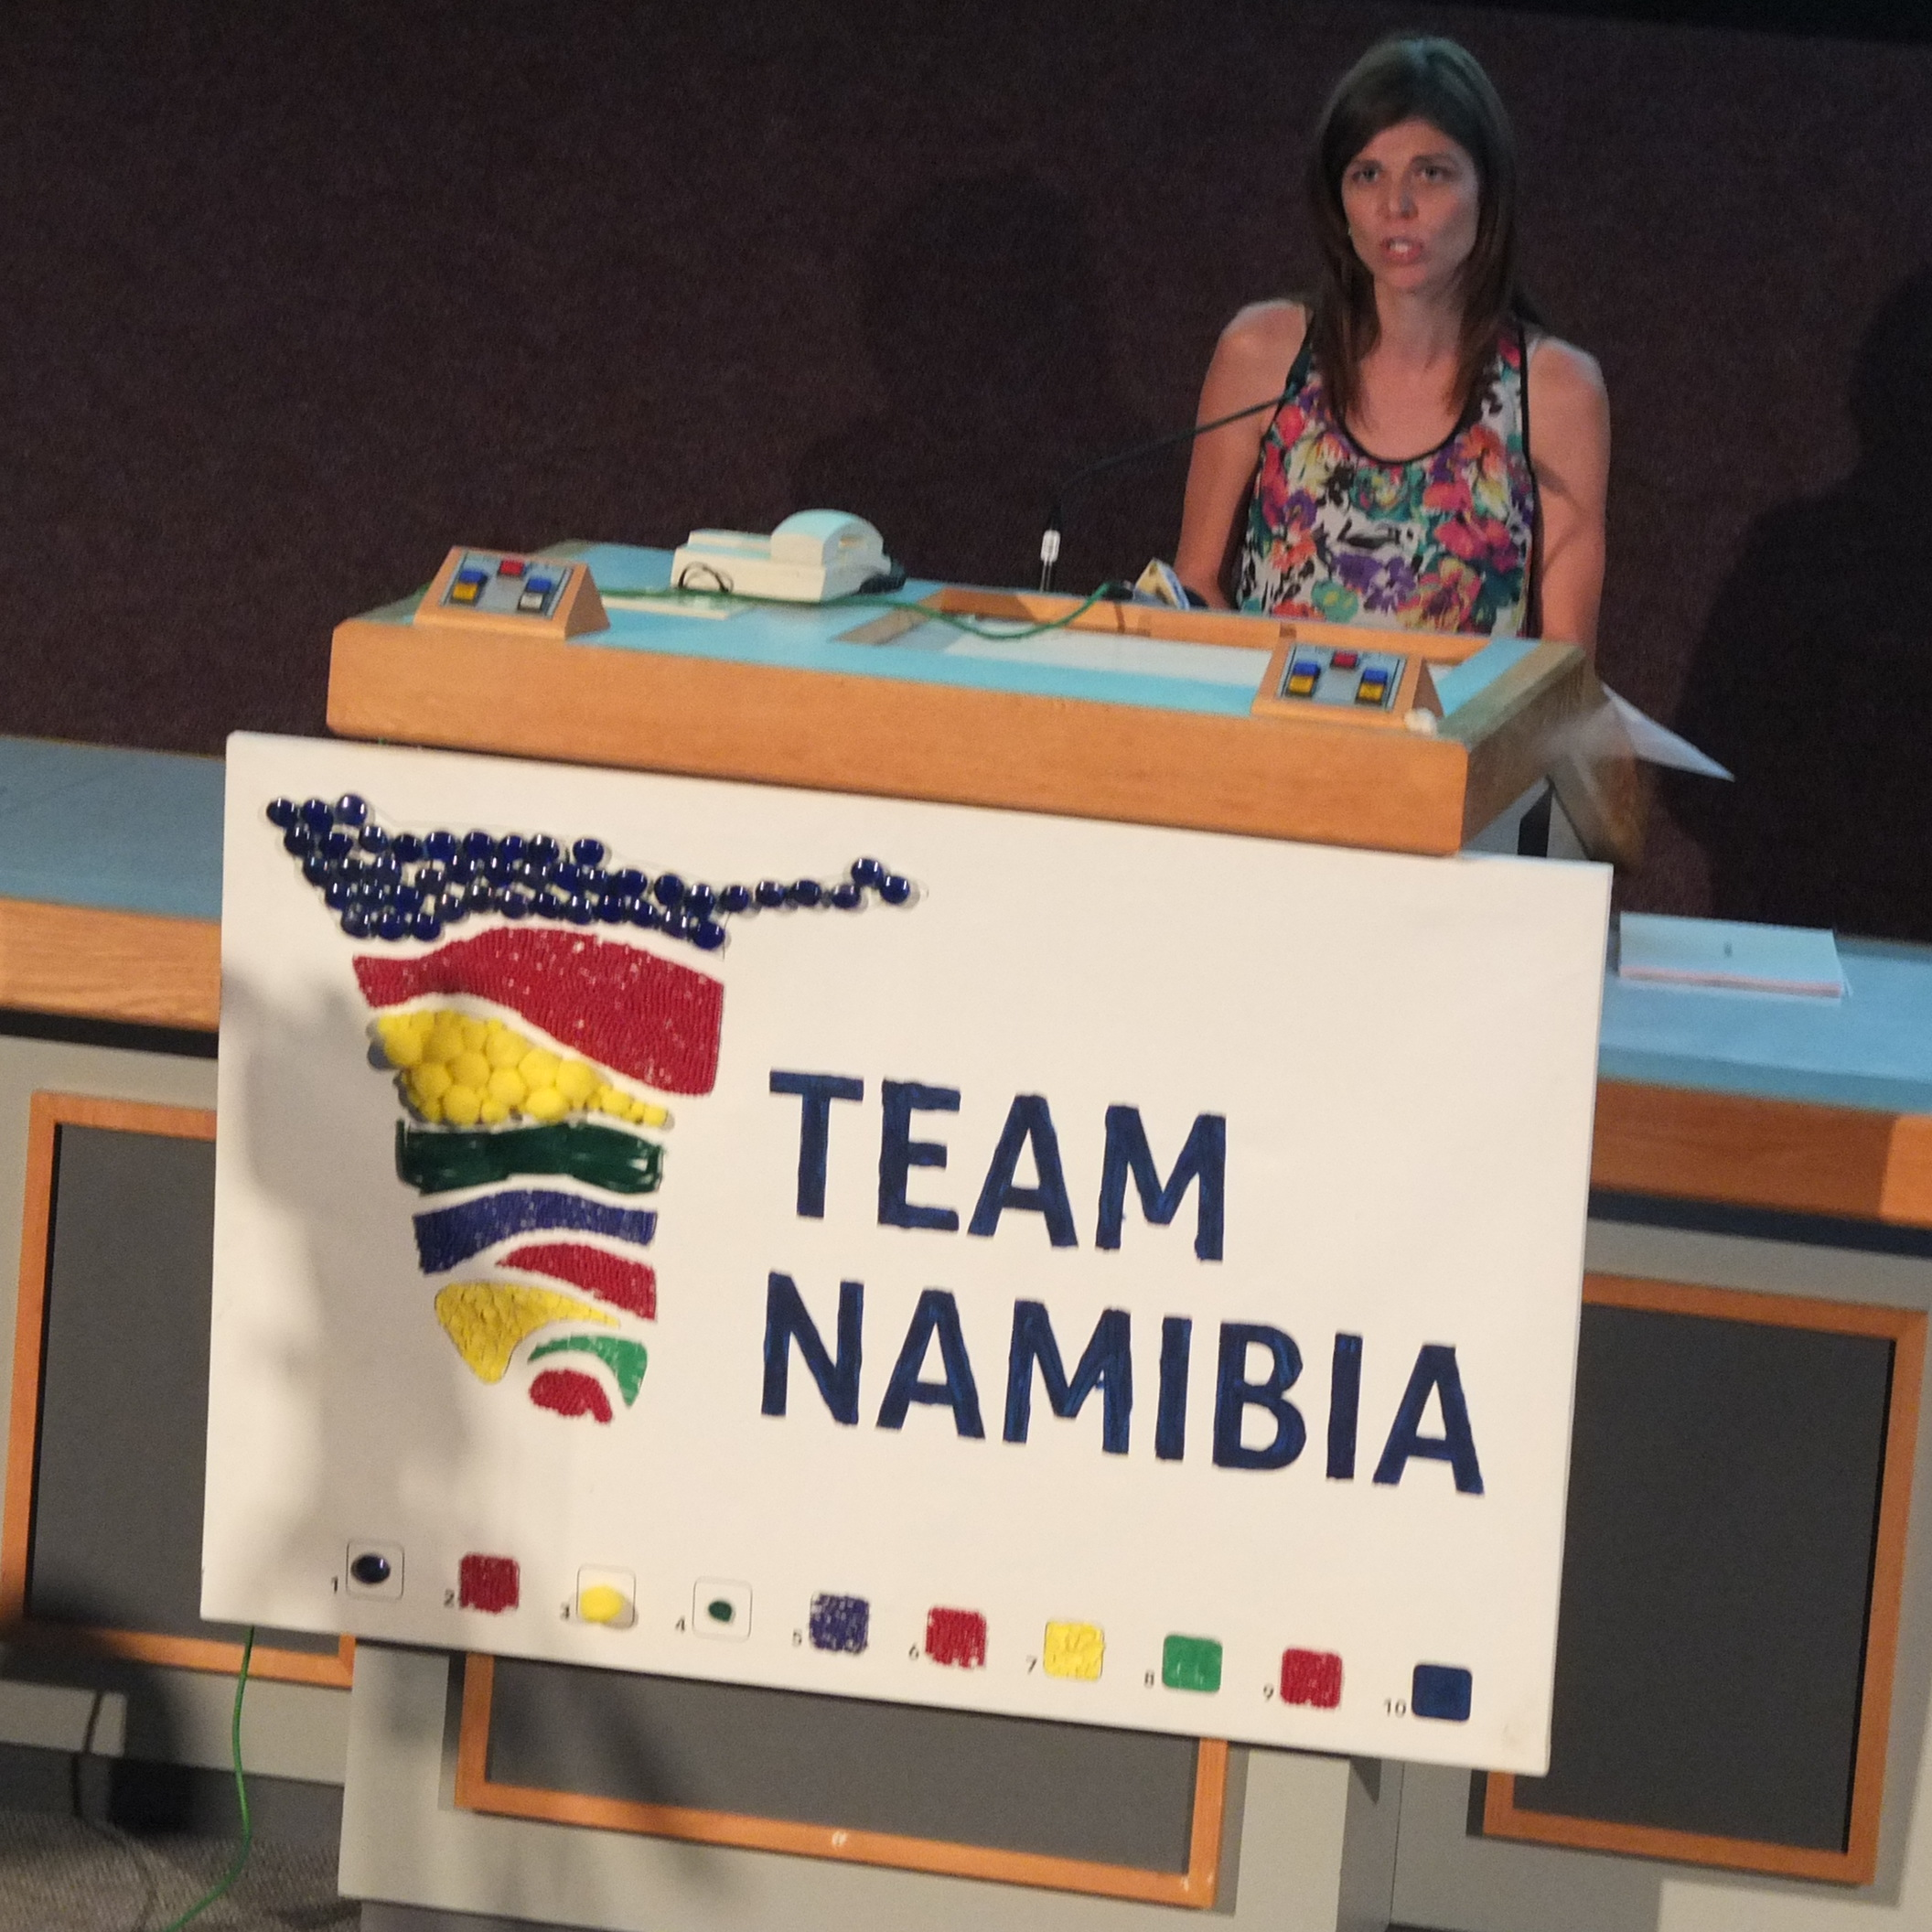 Lizette Foot, General Manager at Team Namibia